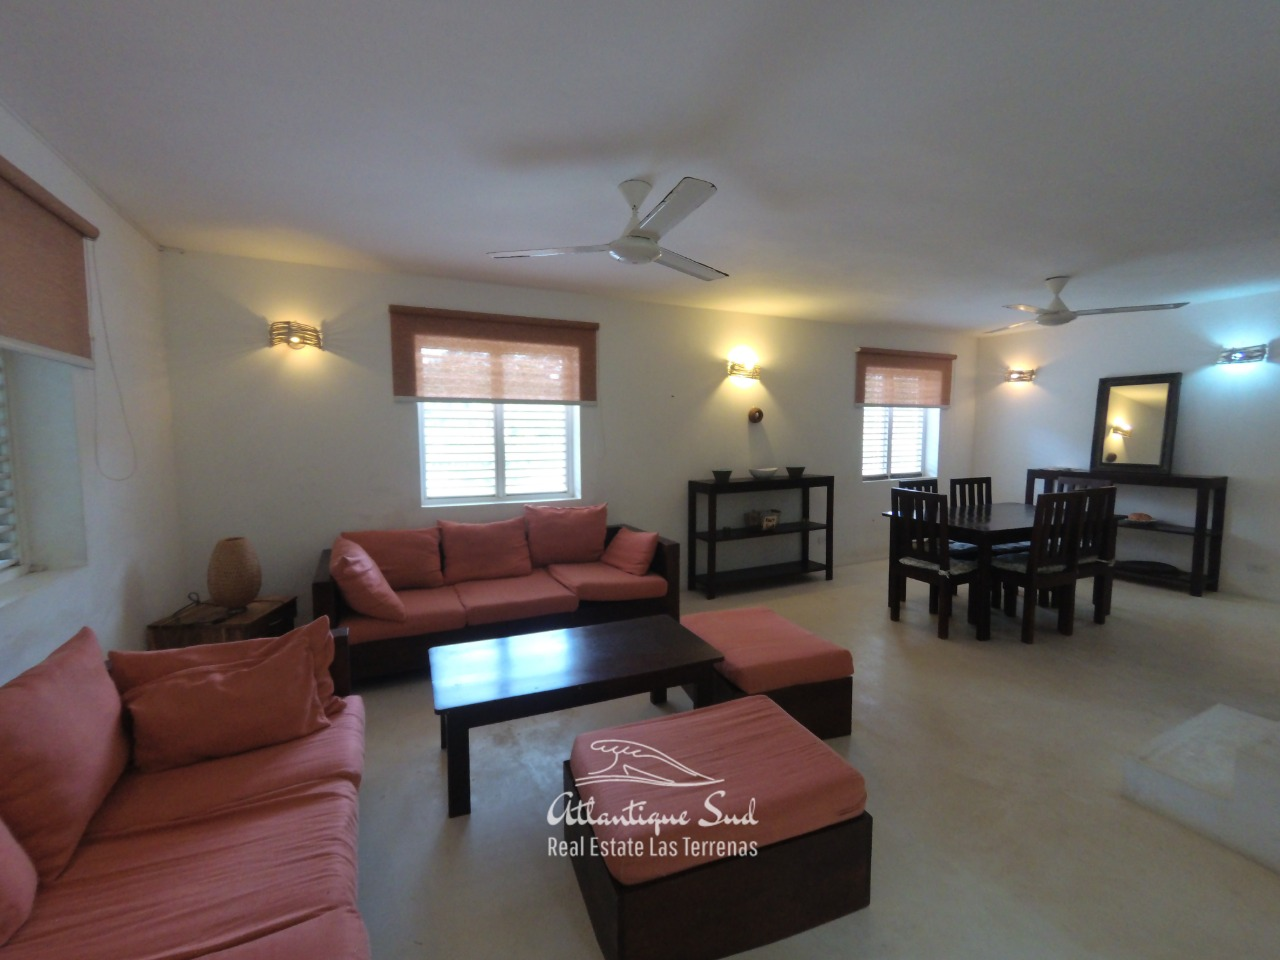 Villa for sale steps from the beach in las terrenas 12.jpeg